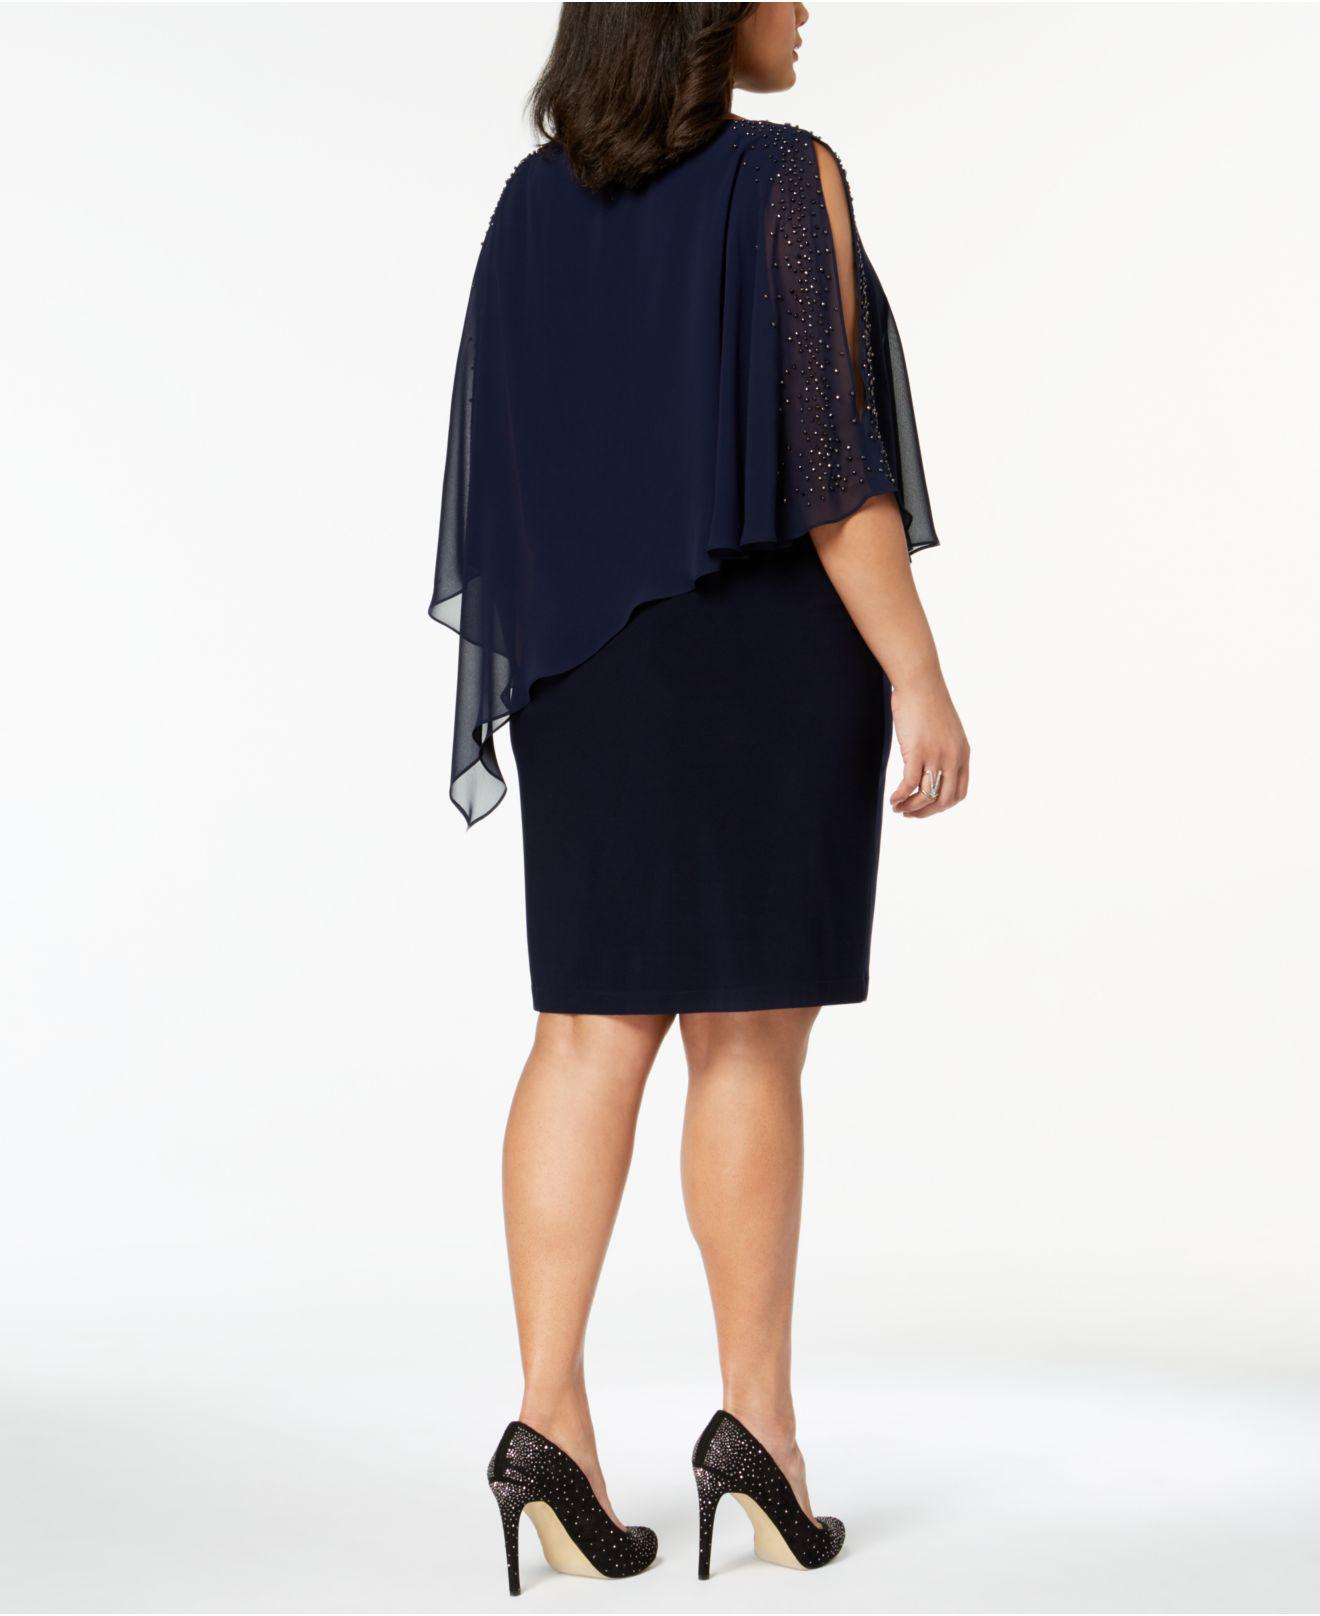 2076a588626 Lyst - Xscape Plus Size Beaded Chiffon Popover Dress in Blue